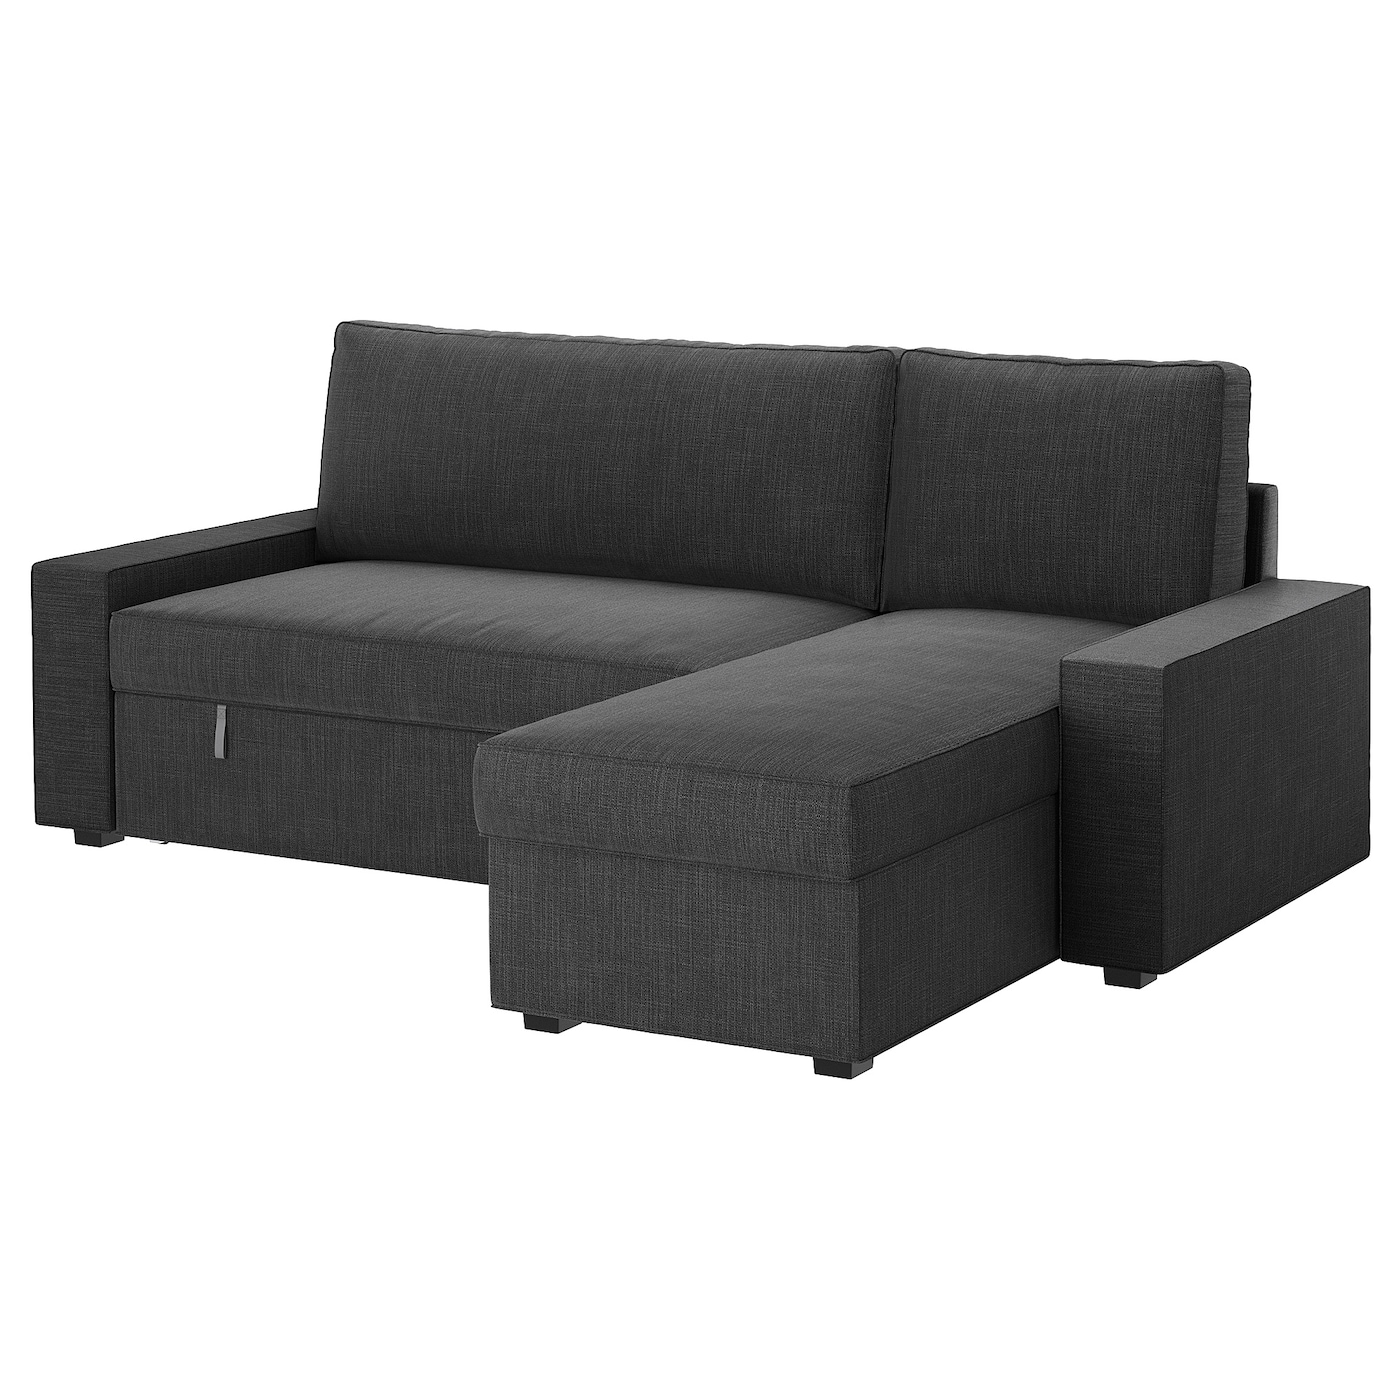 Vilasund sofa bed with chaise longue hillared anthracite for Chaise longue tissu